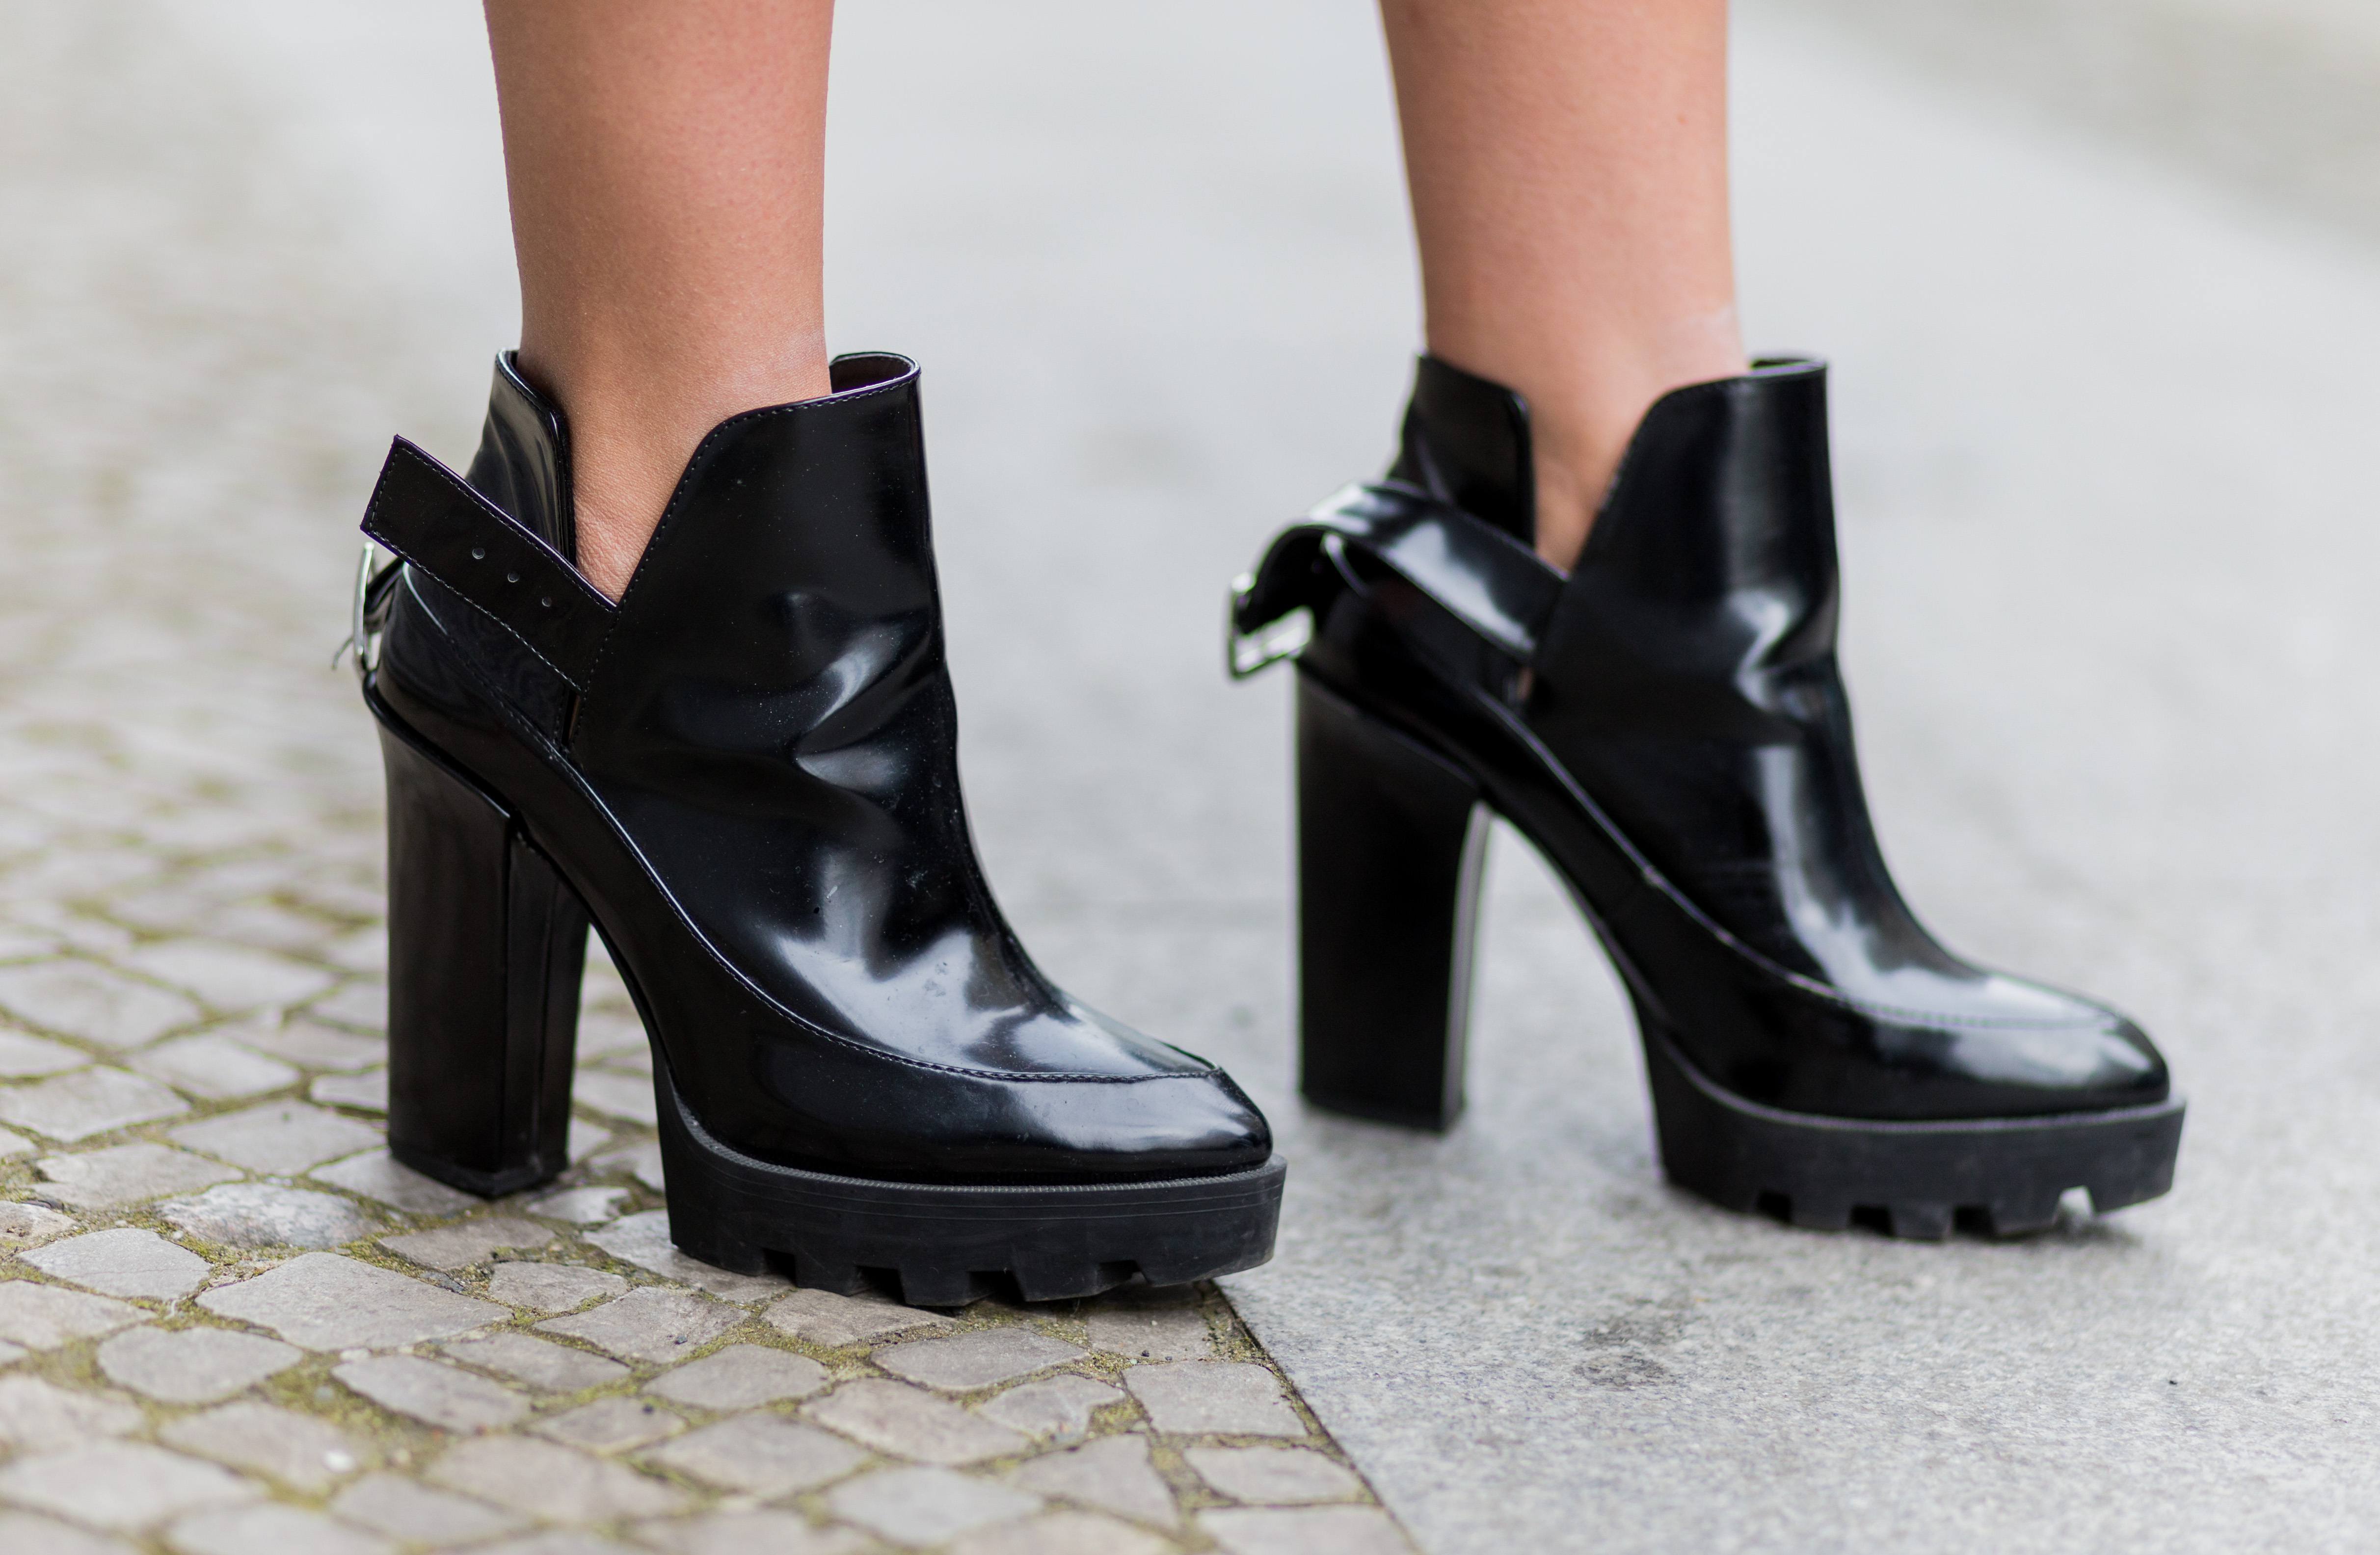 21 Pairs of Chunky Heel Boots You'll